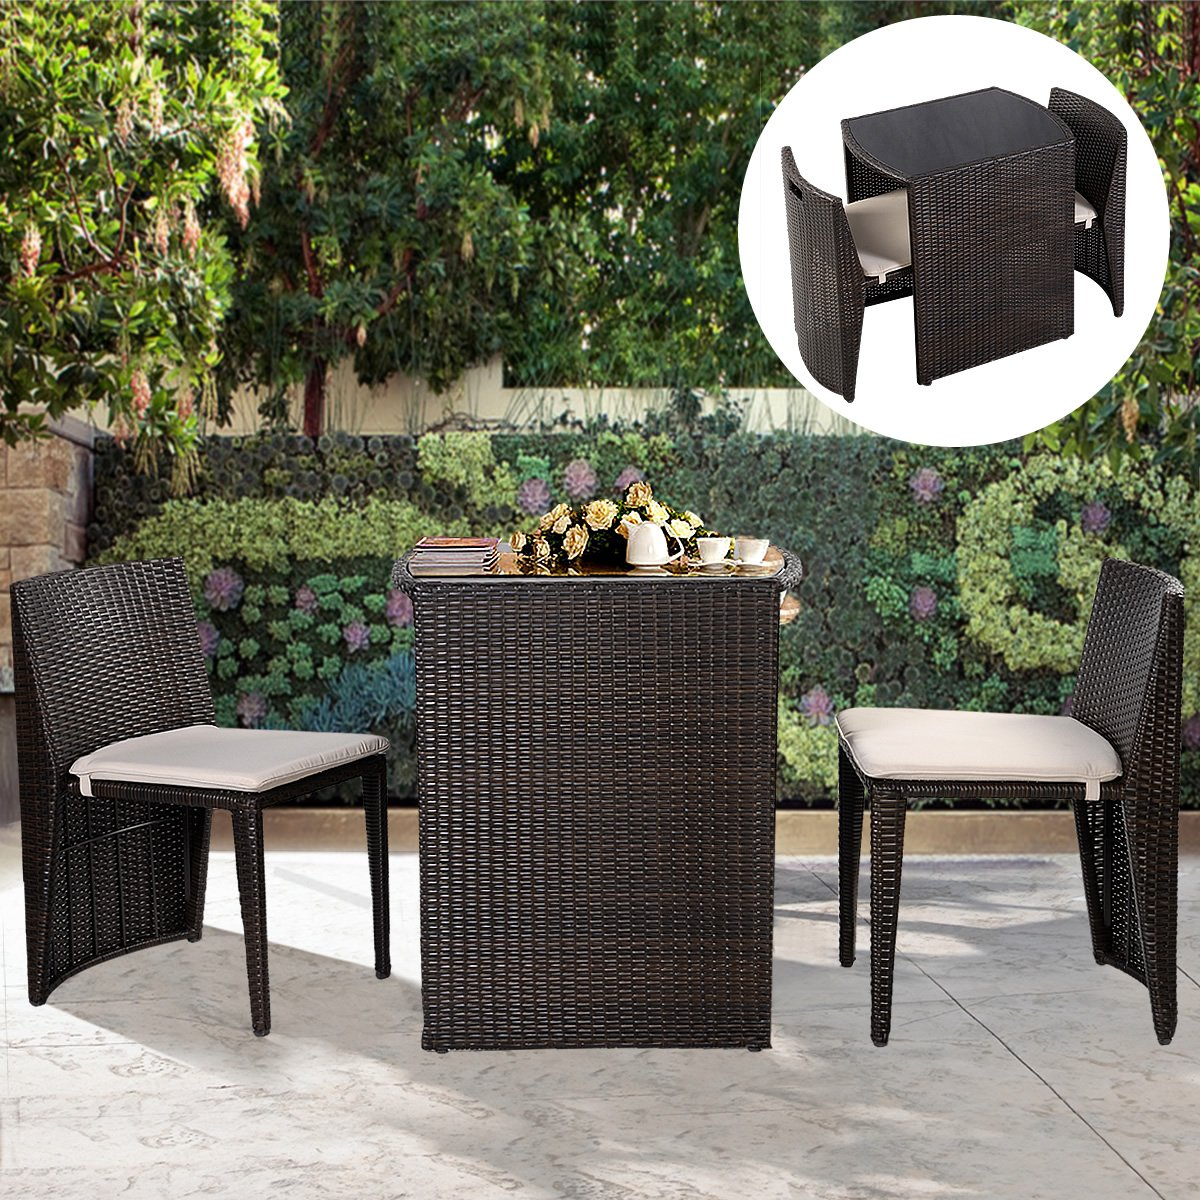 Amazon.com : Goplus 3 PCS Cushioned Outdoor Wicker Patio Set Seat Brown  Garden Lawn Sofa Furniture New : Garden U0026 Outdoor